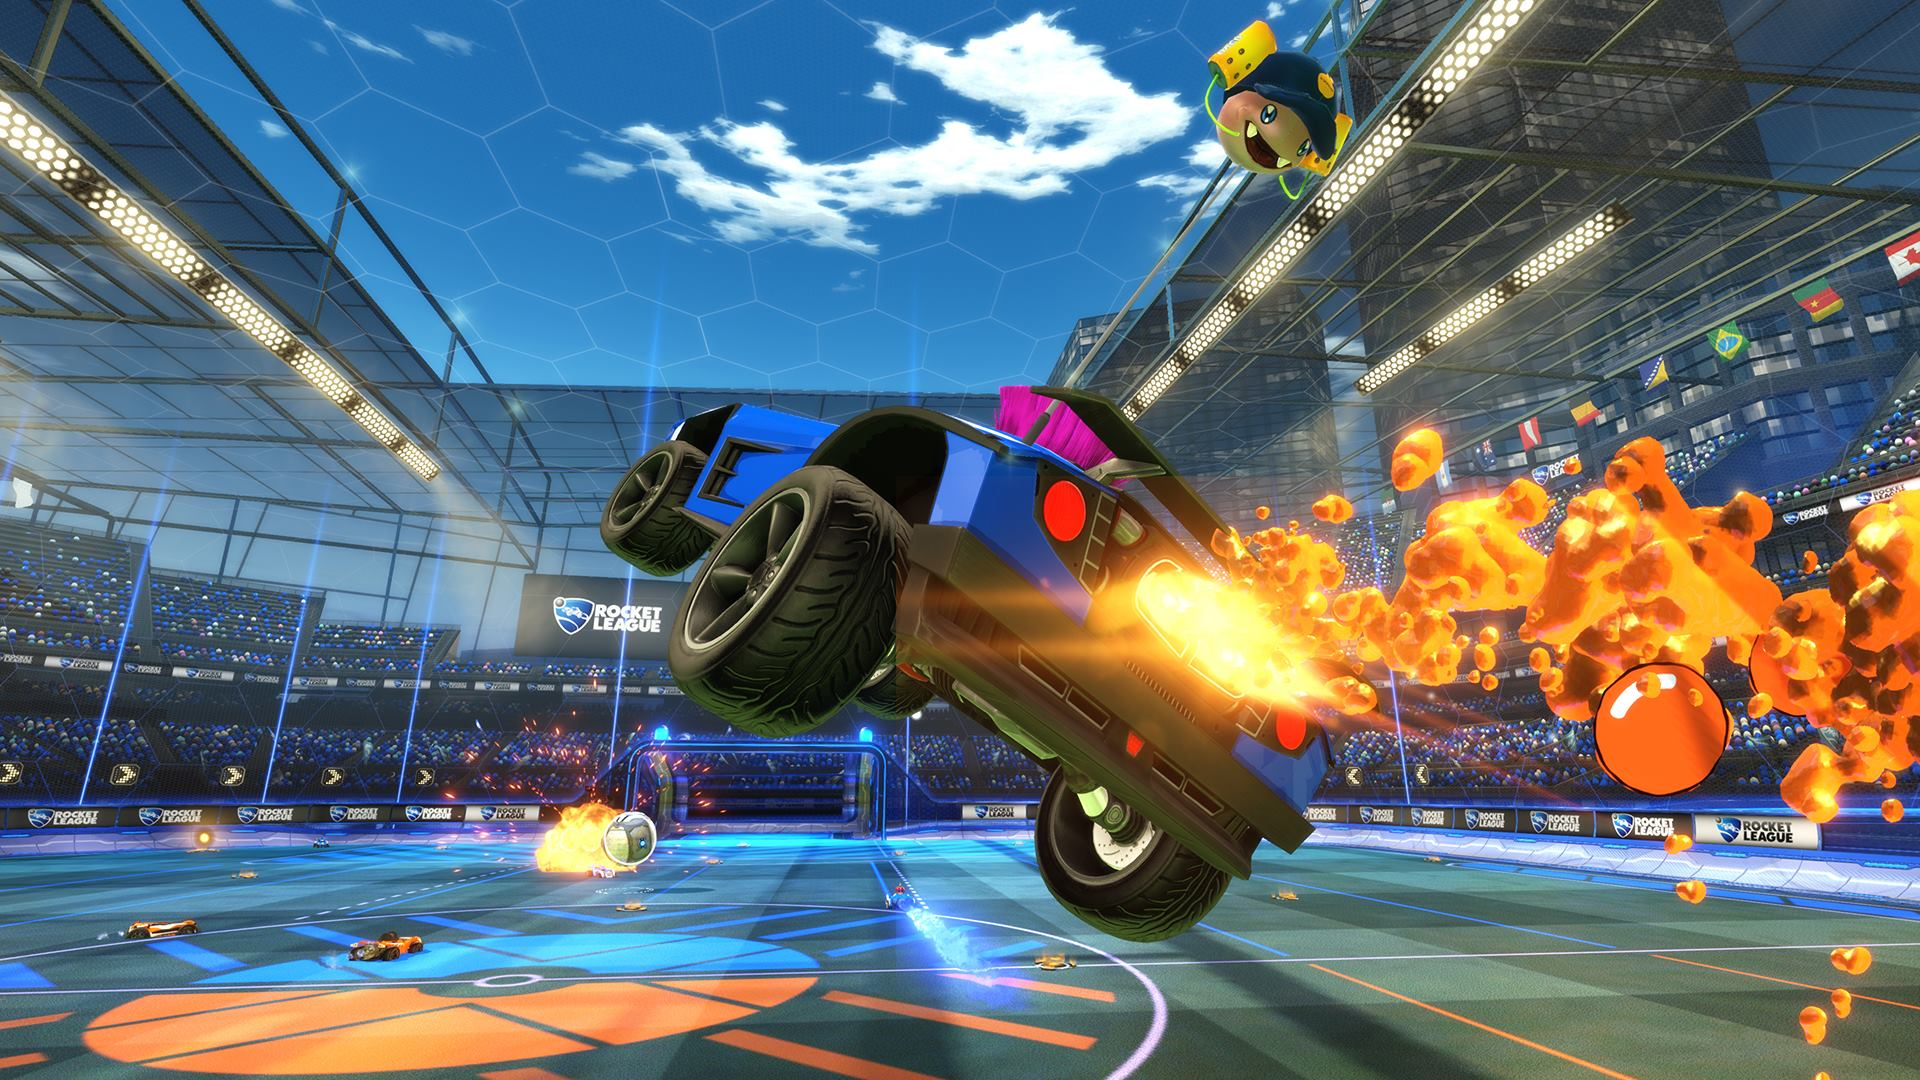 Rocket League Xbox One screenshot